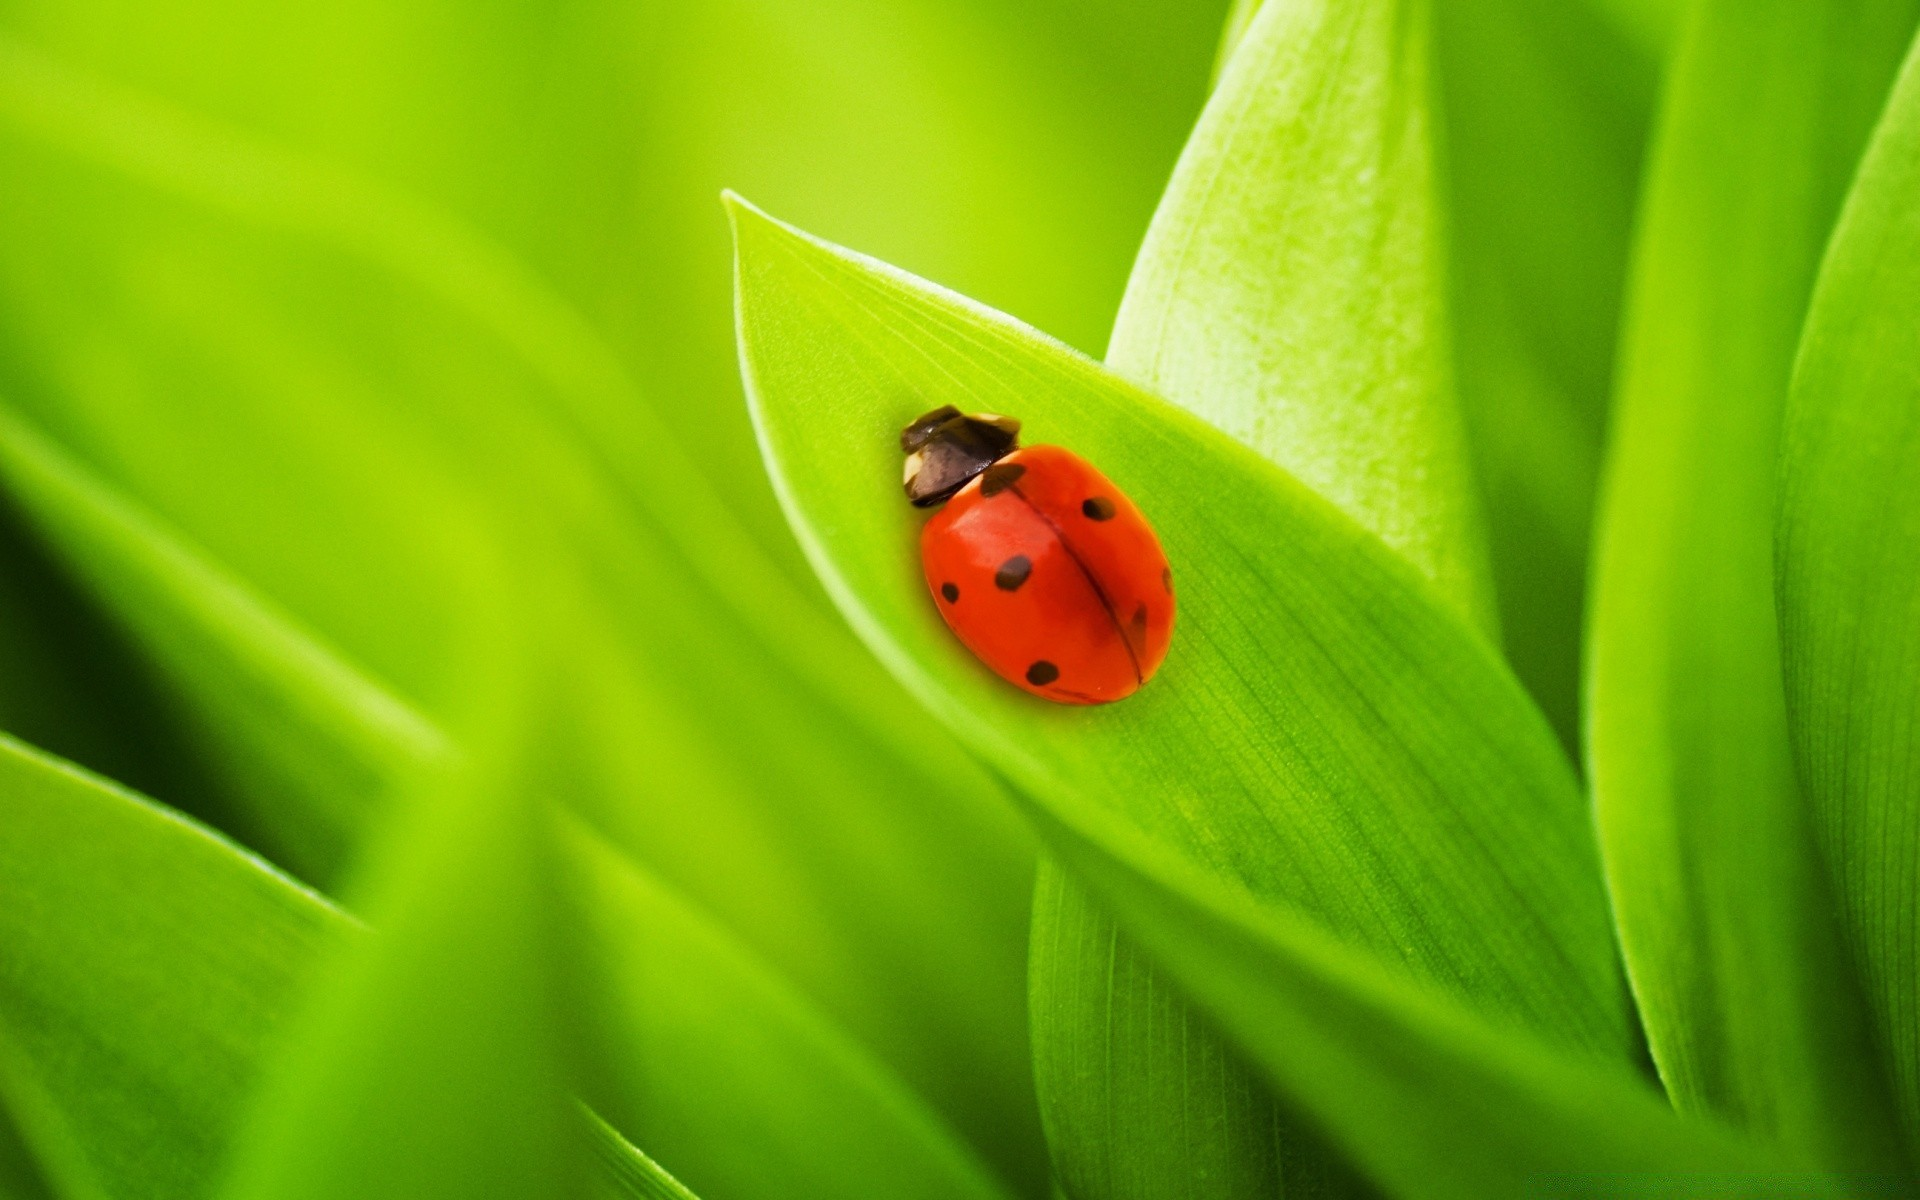 ladybug sleeping on a green leaf. iphone wallpapers for free.